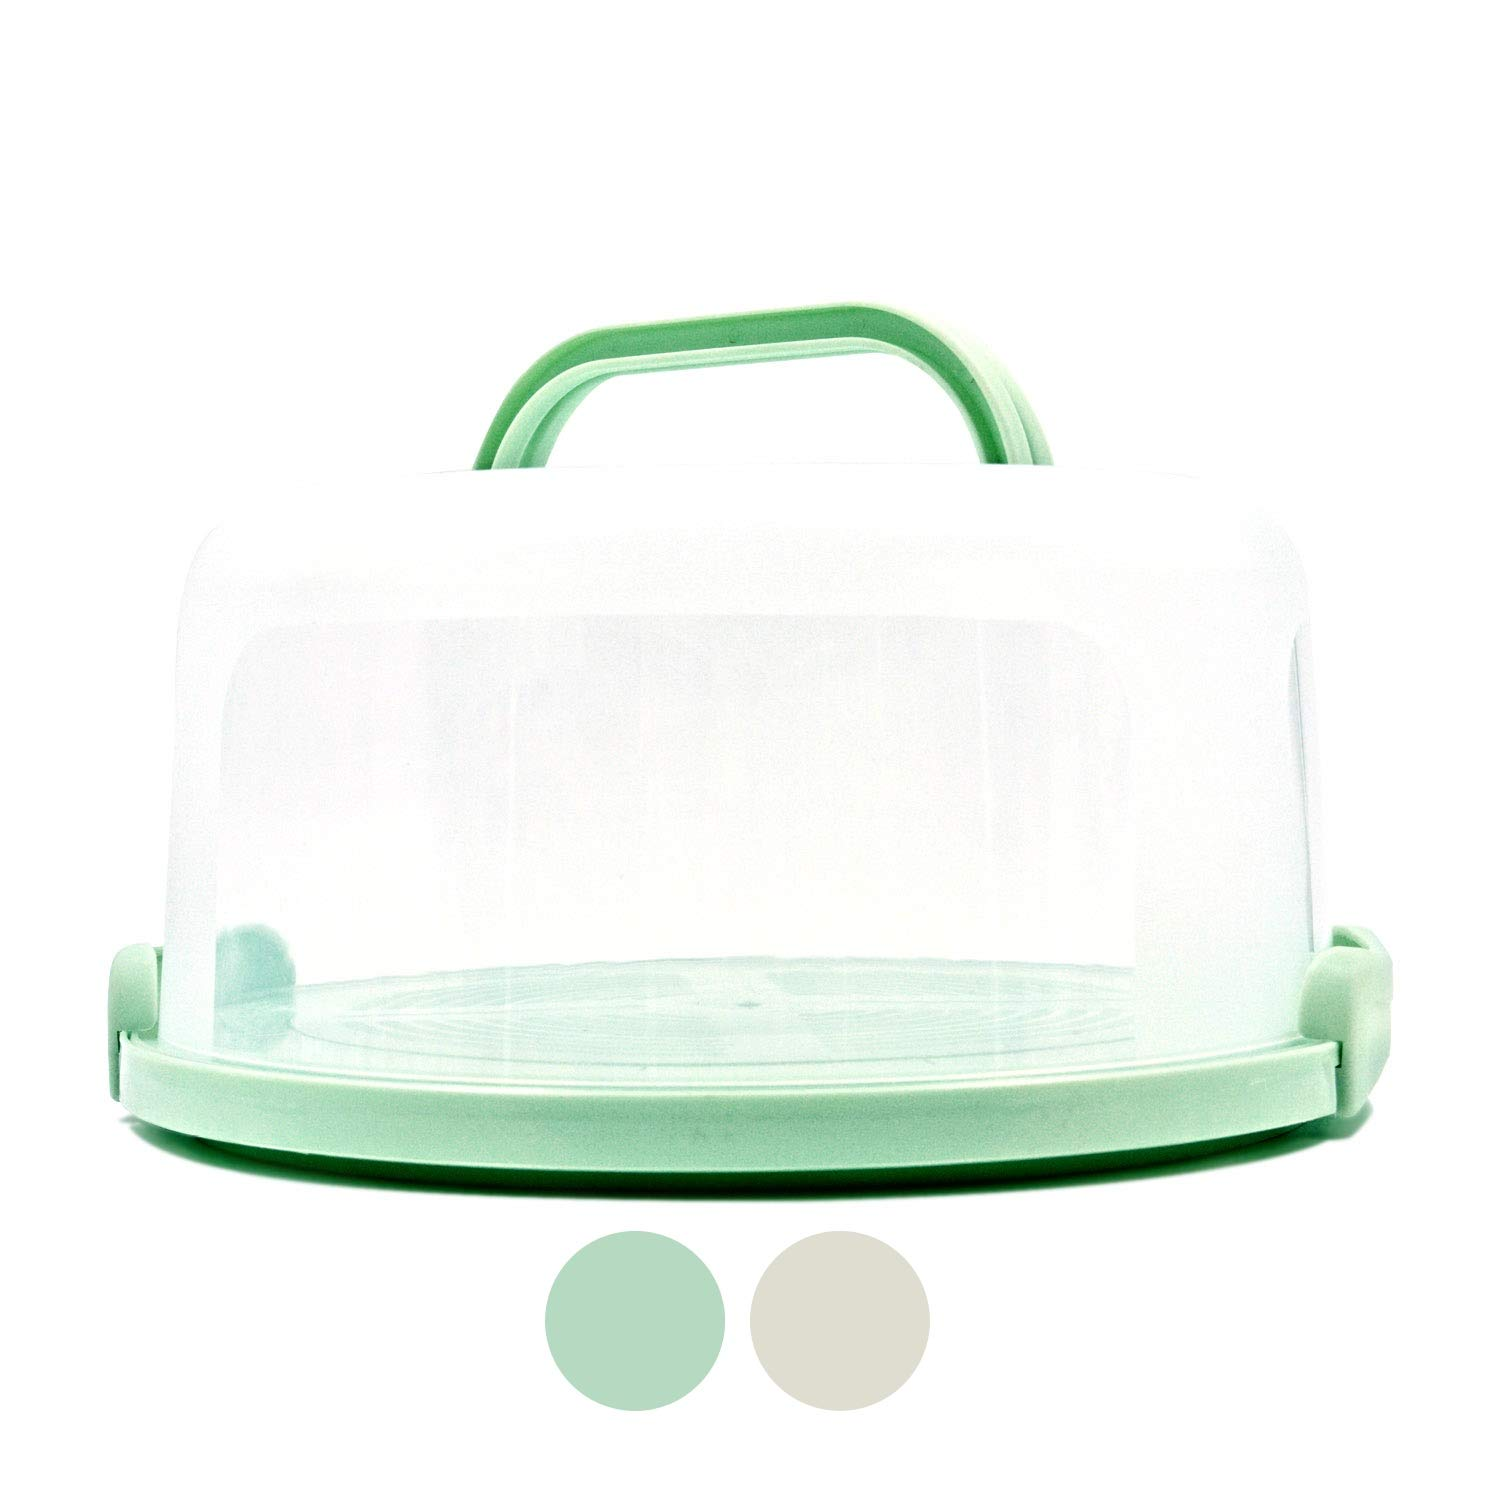 Top Shelf Elements Cake Carrier For Up To 10 inch x 4 1/2 inch Cake. Two Sided Fashionable Sea-Foam Green Stand Doubles as Five Section Serving Tray